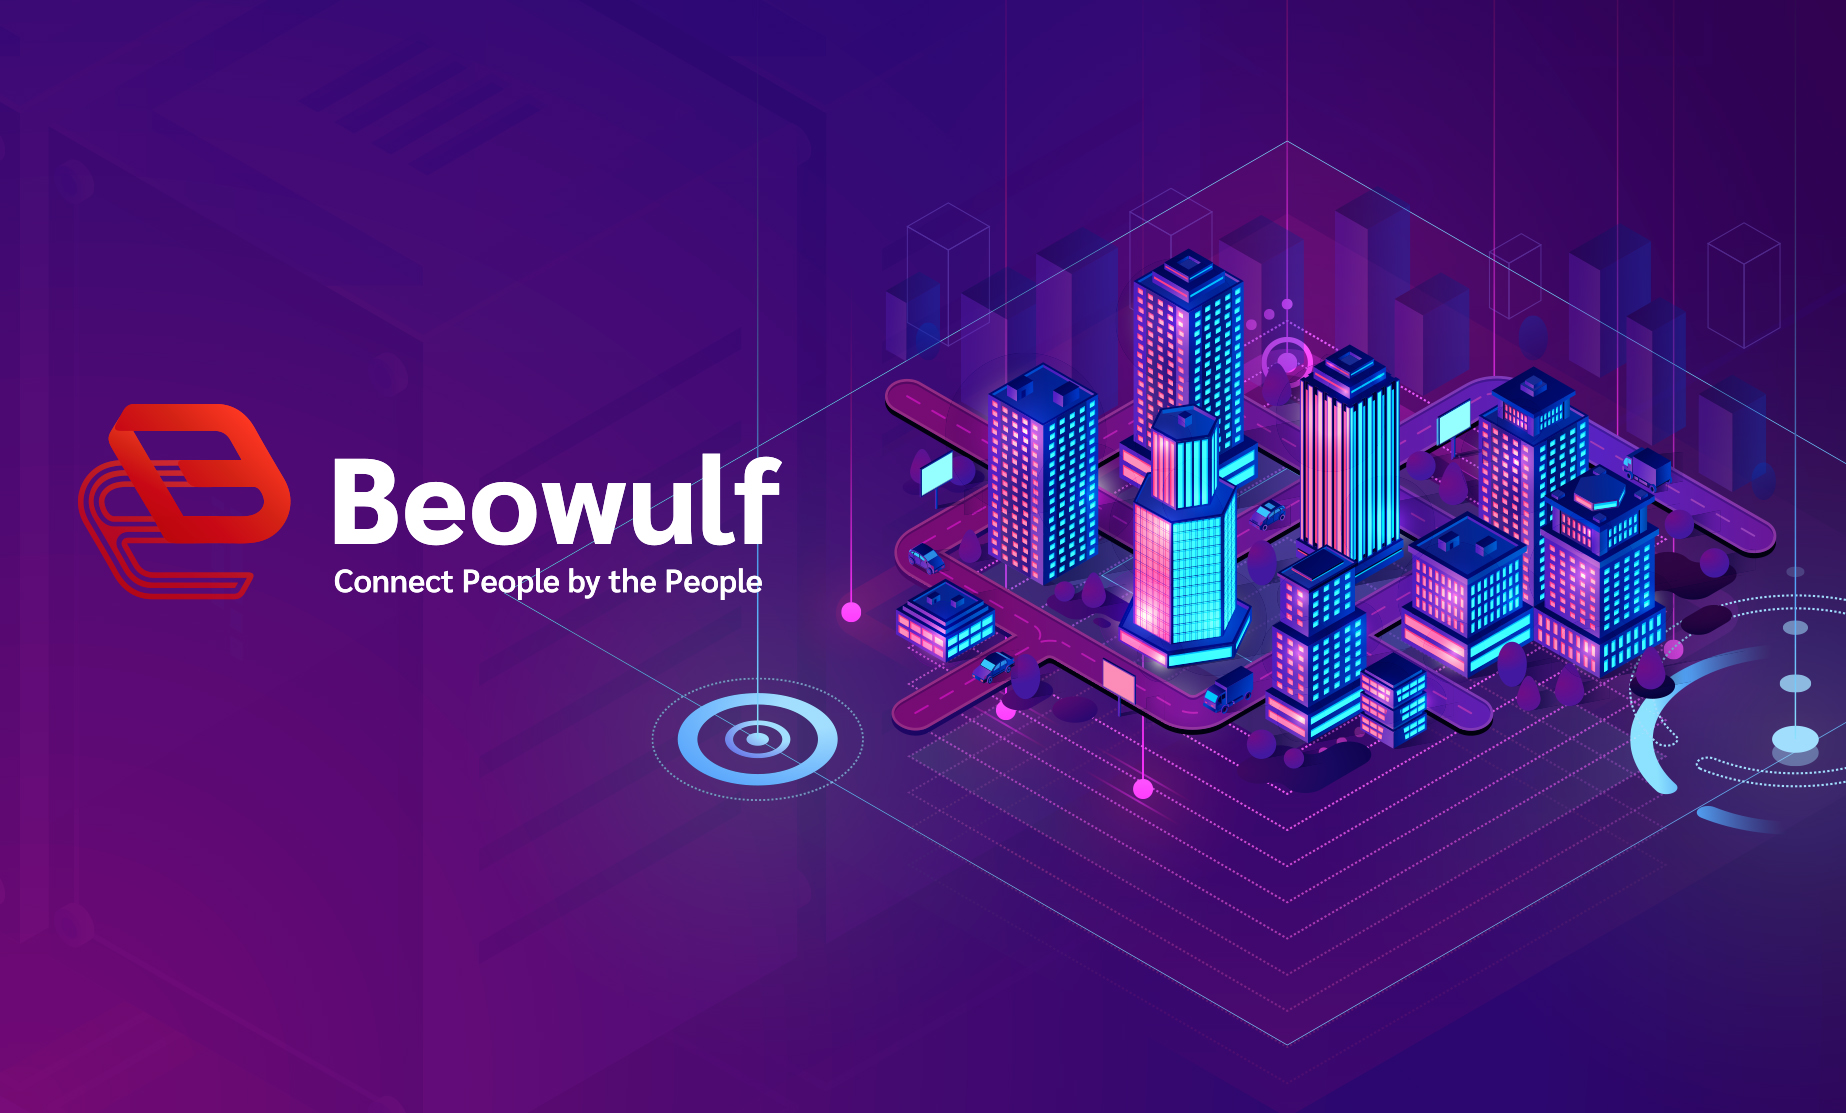 Beowulf - Connect People by The People